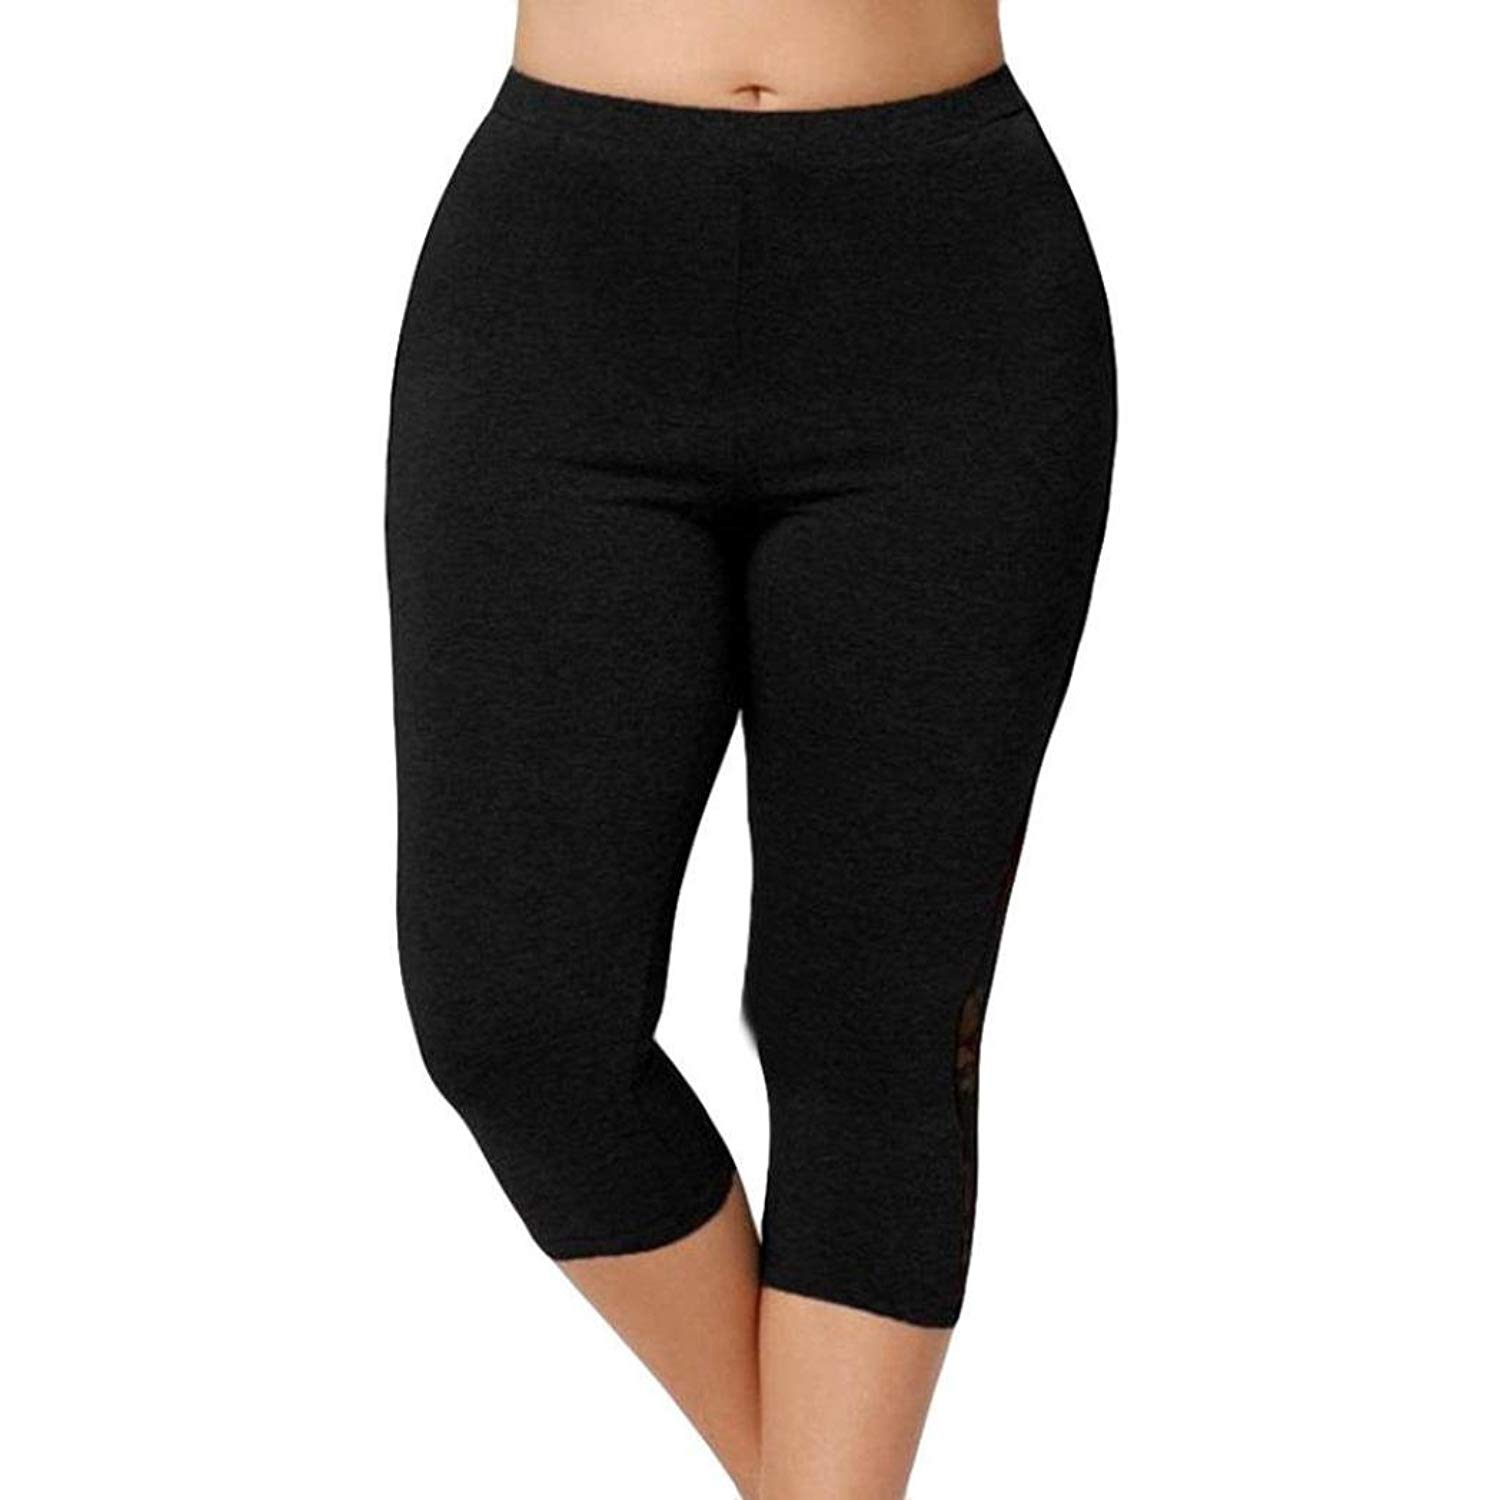 4e07e12b562b80 Get Quotations · Memela Yoga pants Womens Plus Size High Waist Lace  Splicing Leggings Short Yoga Sport Print Pants